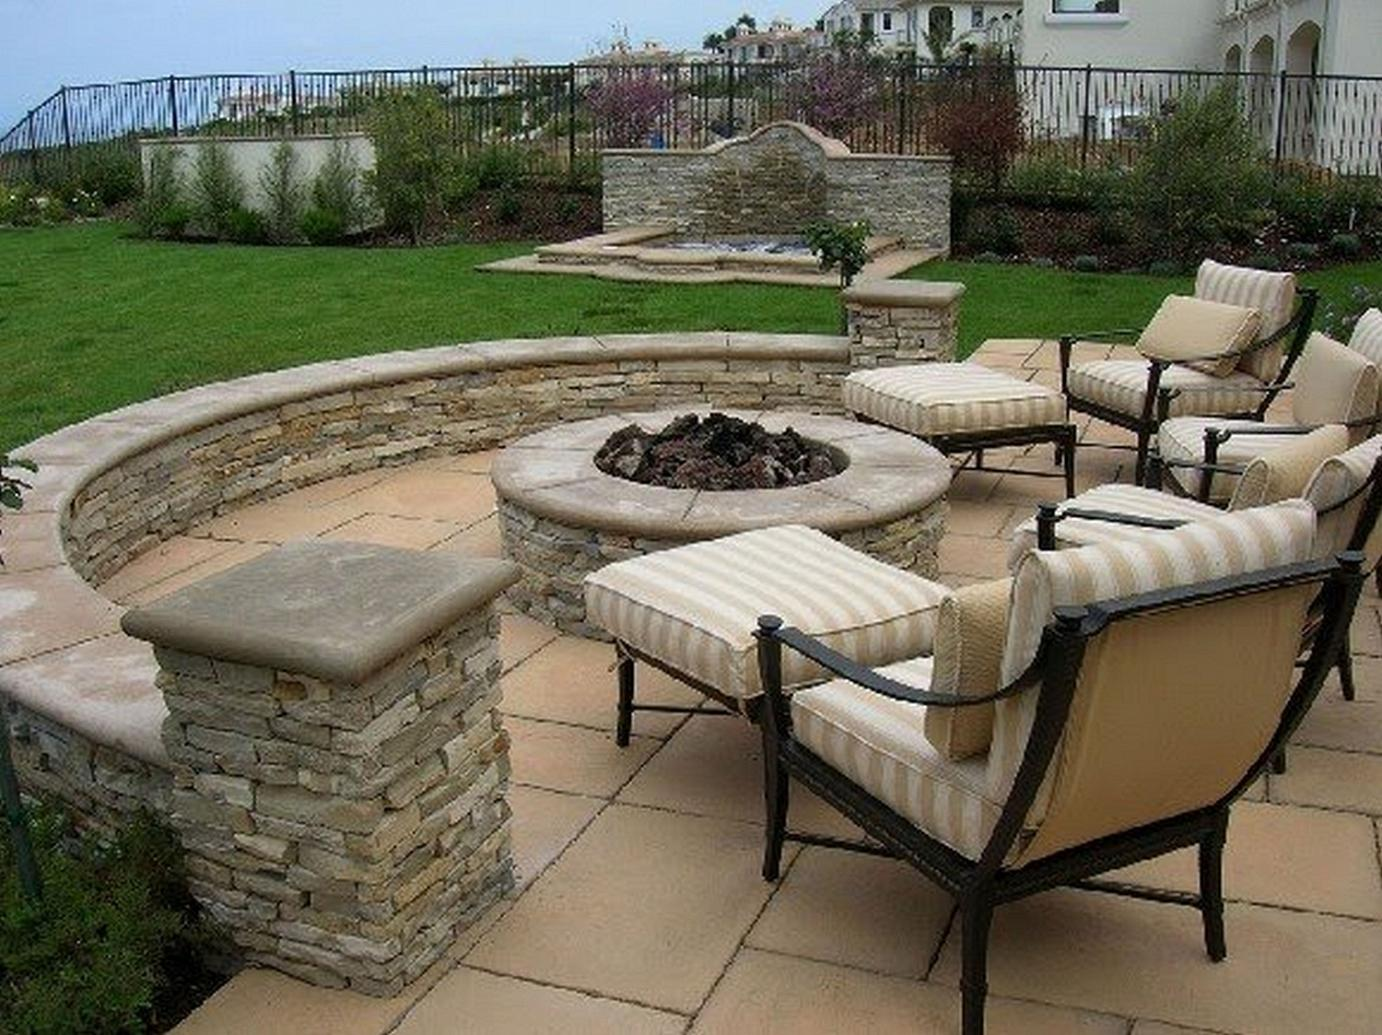 Backyard patio ideas on a budget - large and beautiful ...